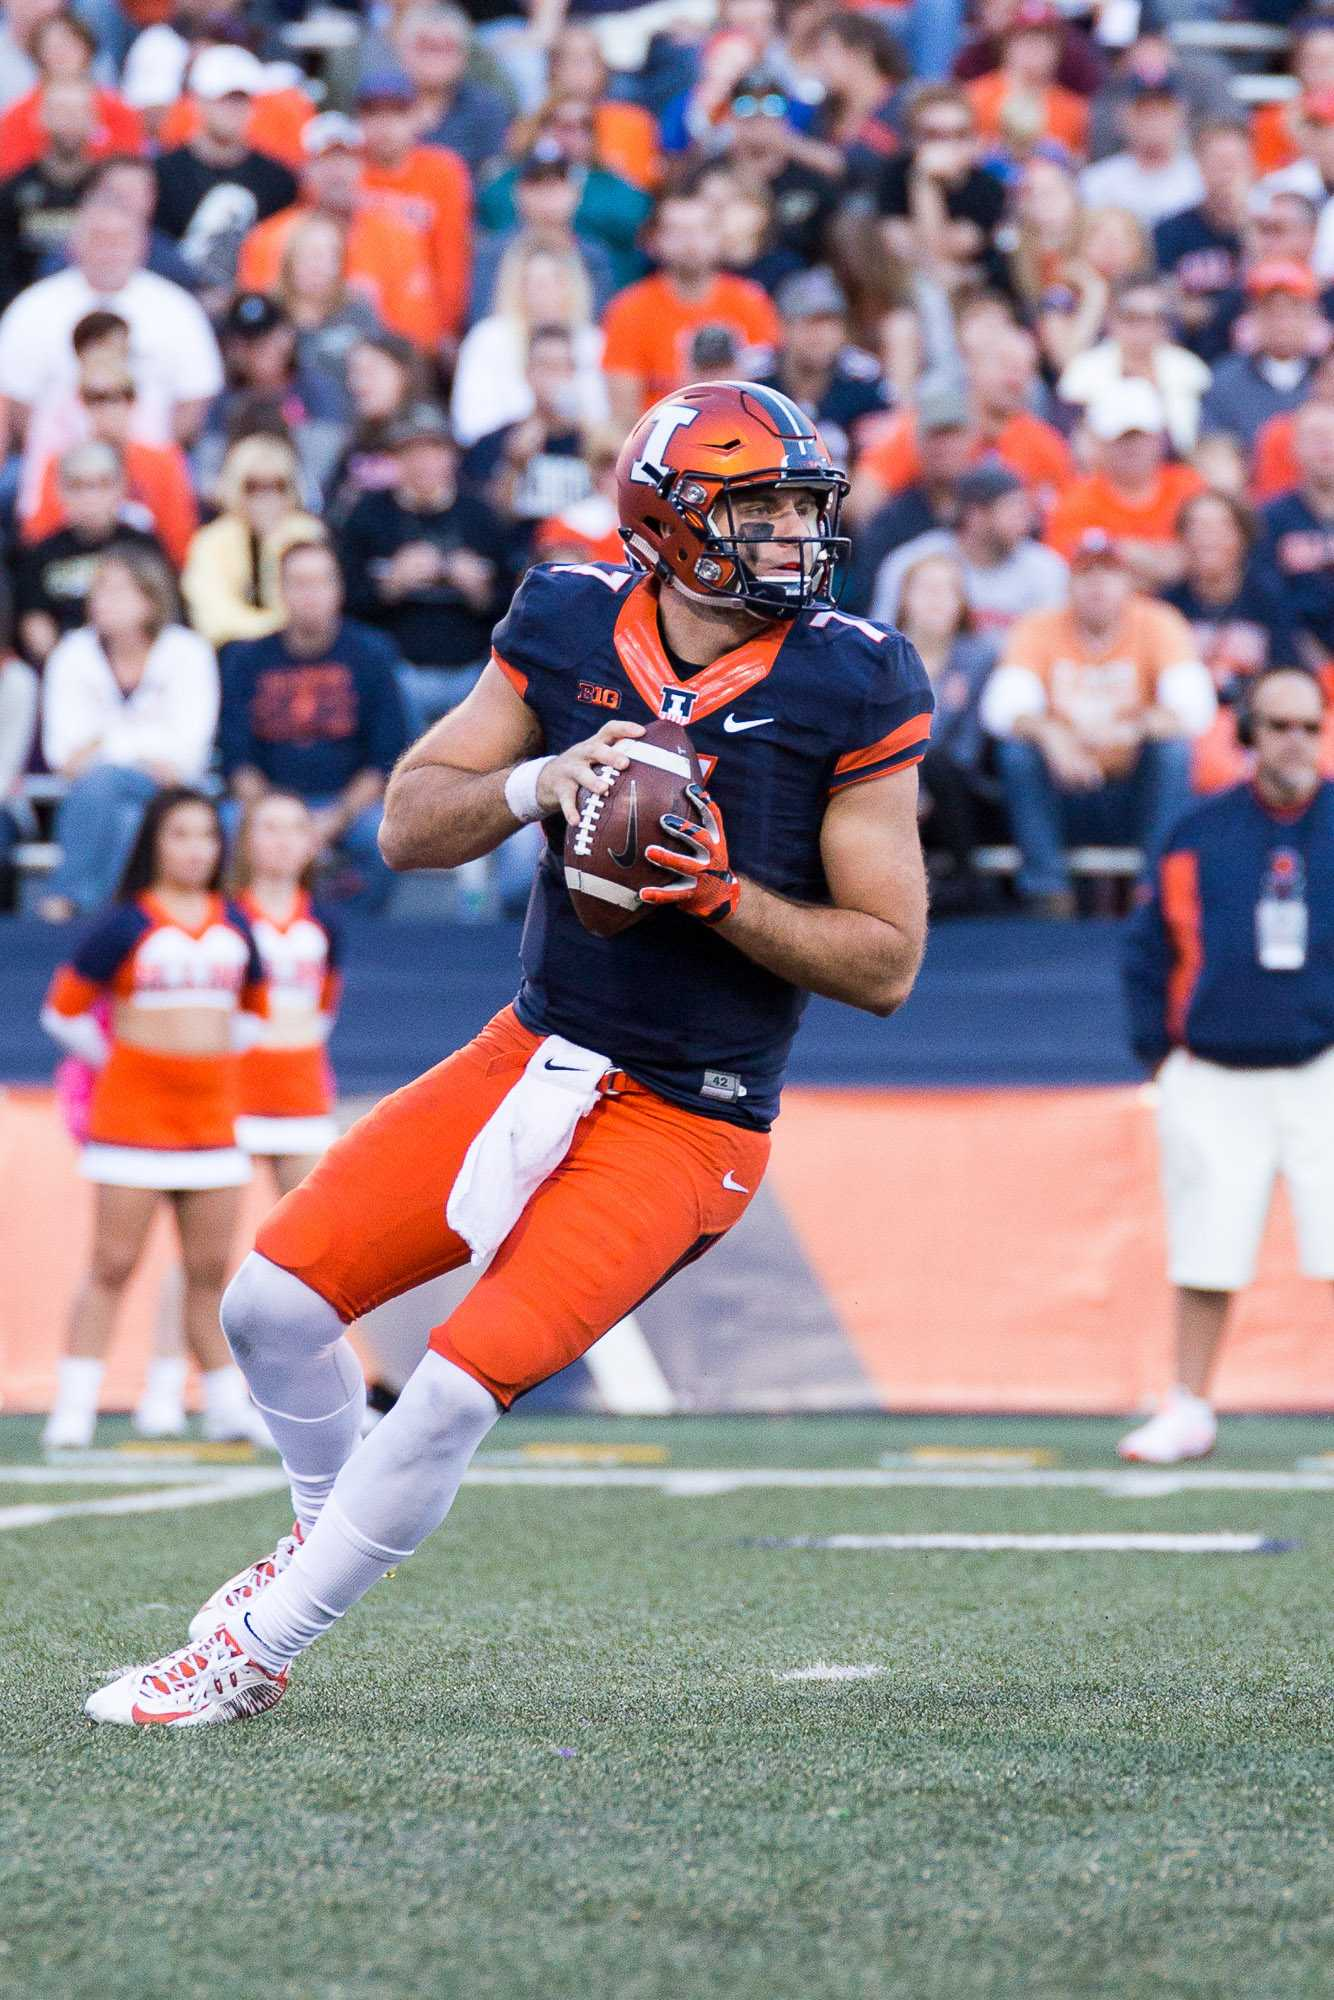 Illinois quarterback Chayce Crouch (7) looks to pass the ball during the game against Purdue at Memorial Stadium on Saturday, October 8. The Illini lost 34-31.